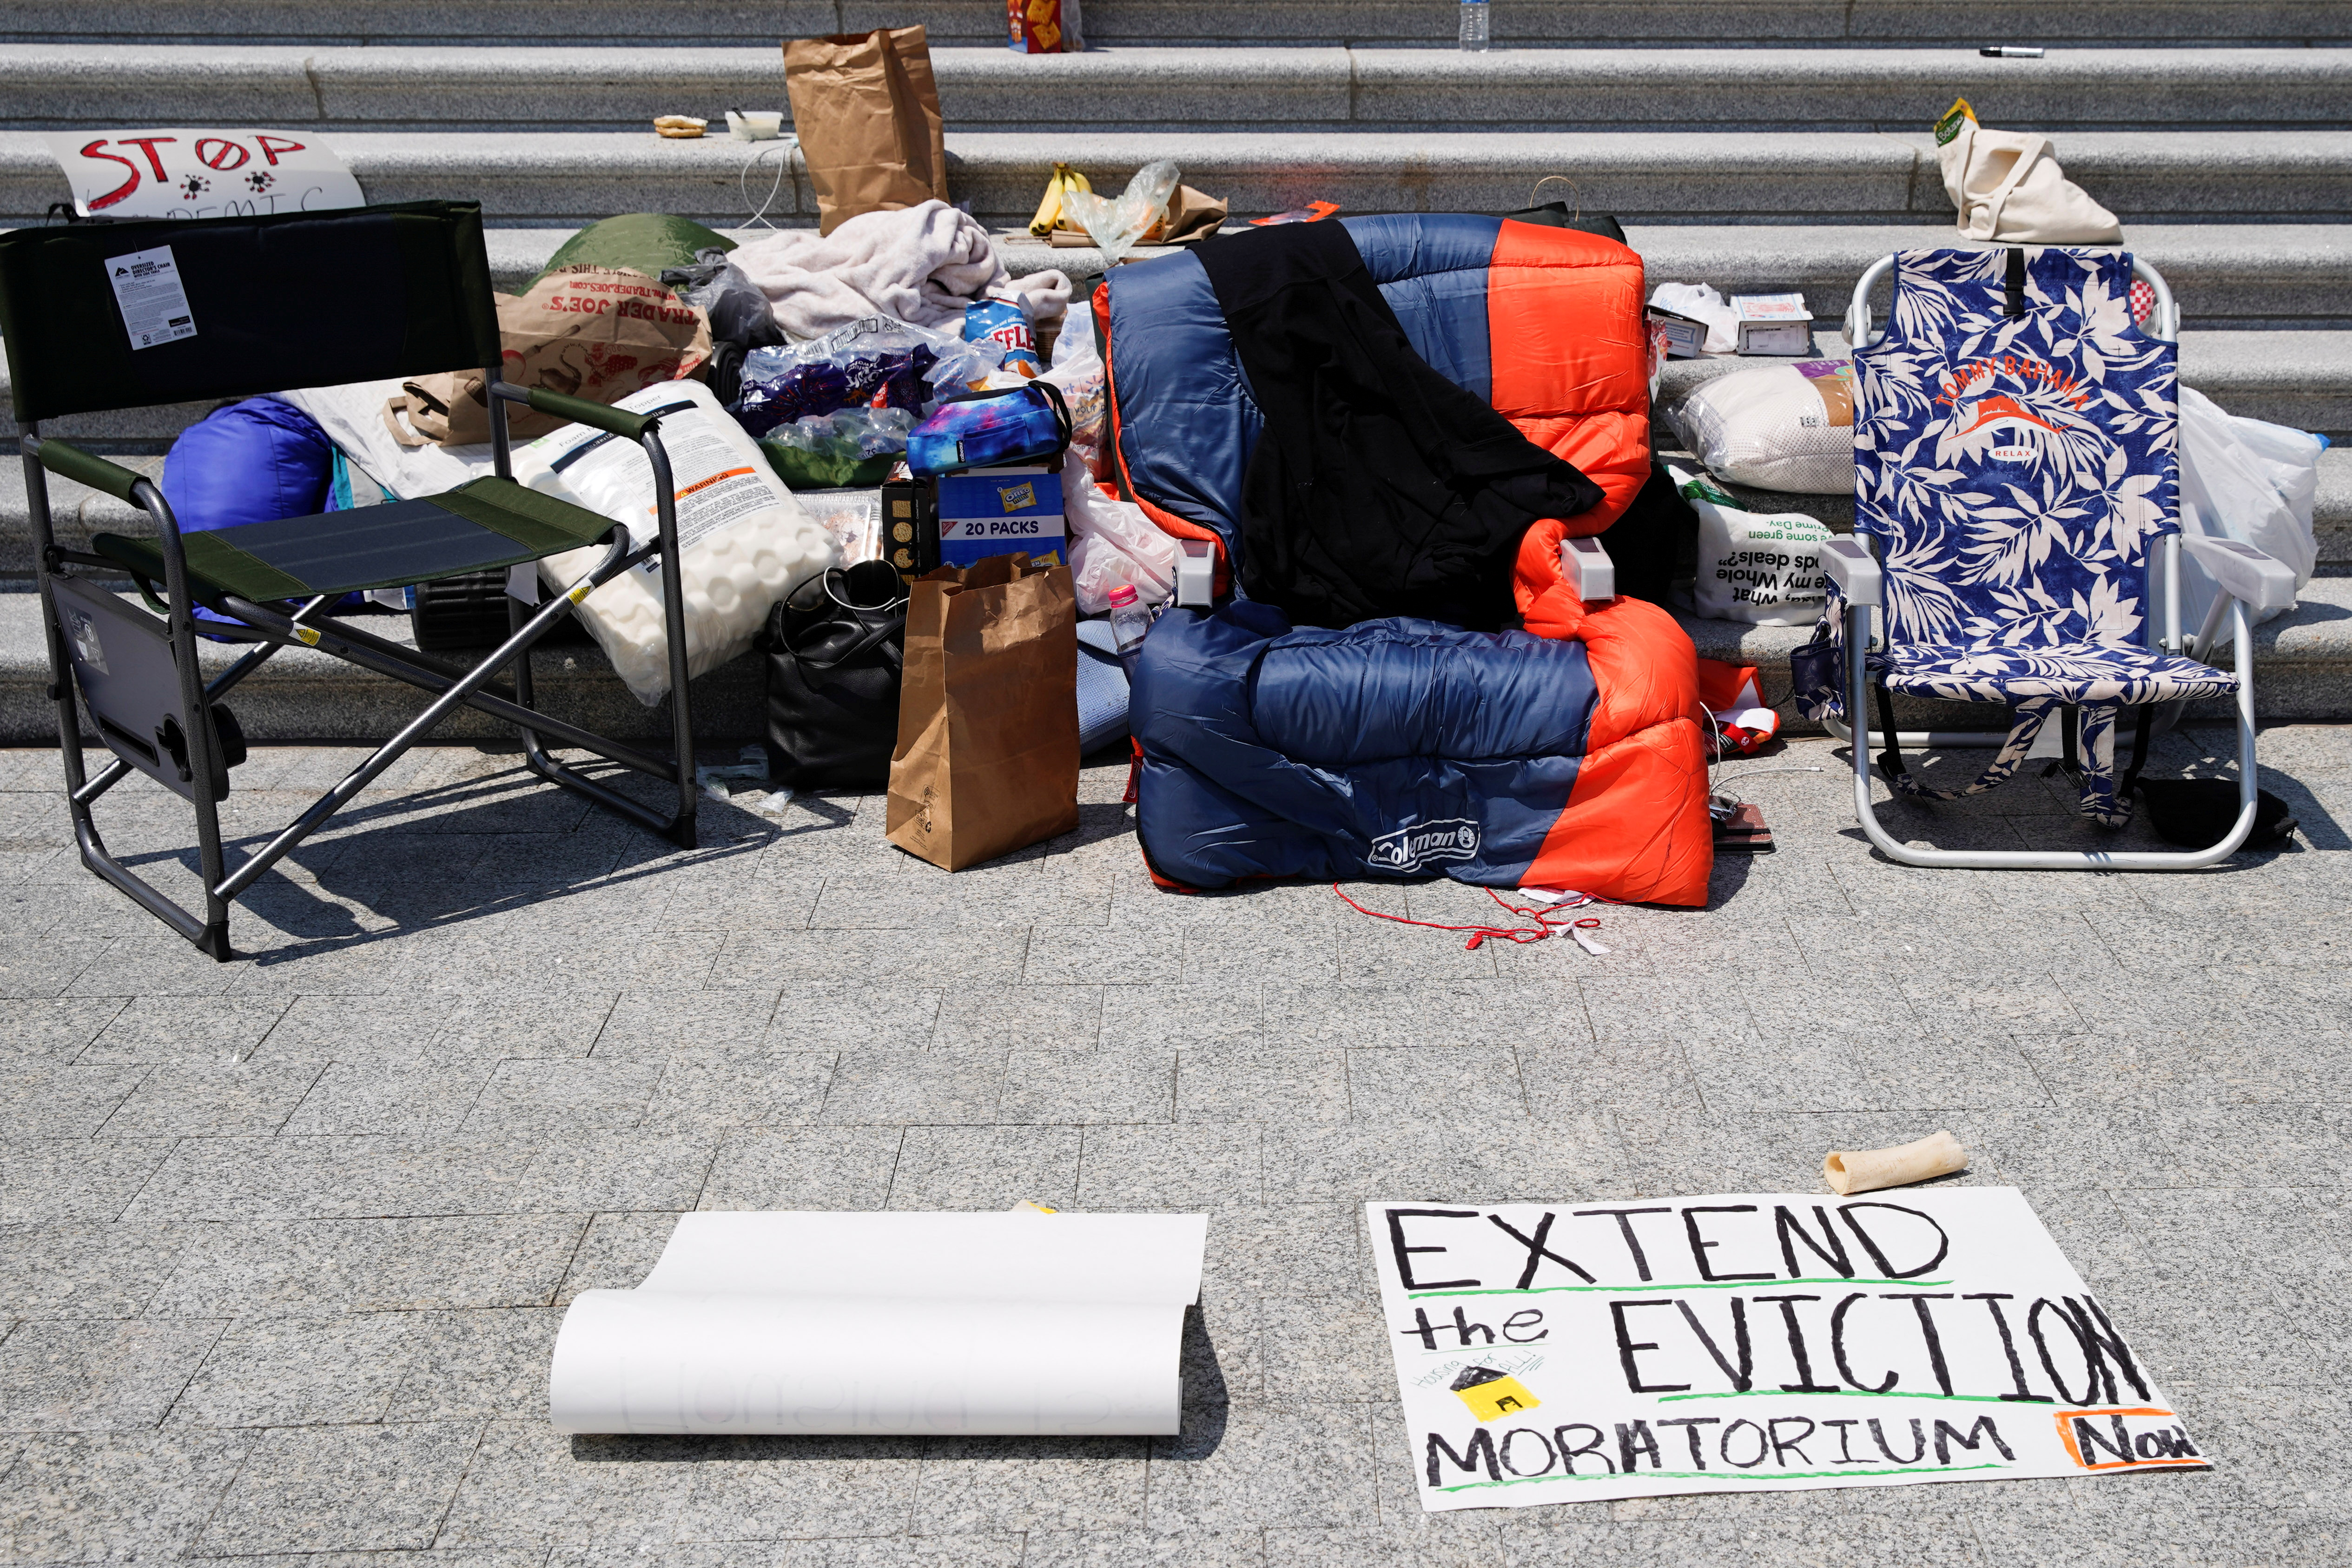 A sleeping bag is seen on the chair of U.S. Representative Cori Bush (D-MO) who spent the night on the steps of the U.S. Capitol to highlight the upcoming expiration of the pandemic-related federal moratorium on residential evictions, in Washington, U.S., July 31, 2021. REUTERS/Elizabeth Frantz